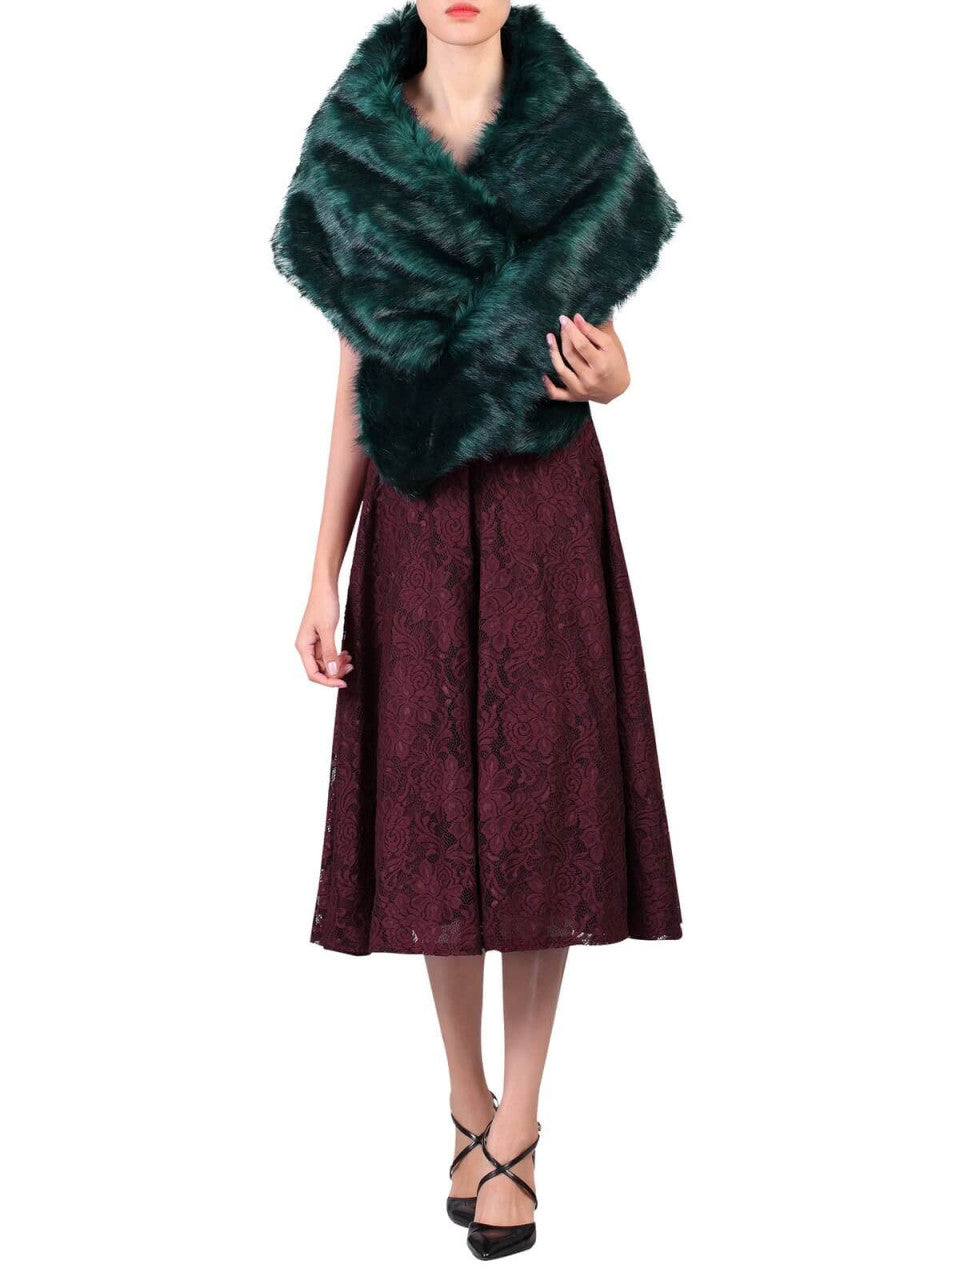 Jolie Moi Faux Fur Stole Wrap, Dark Teal